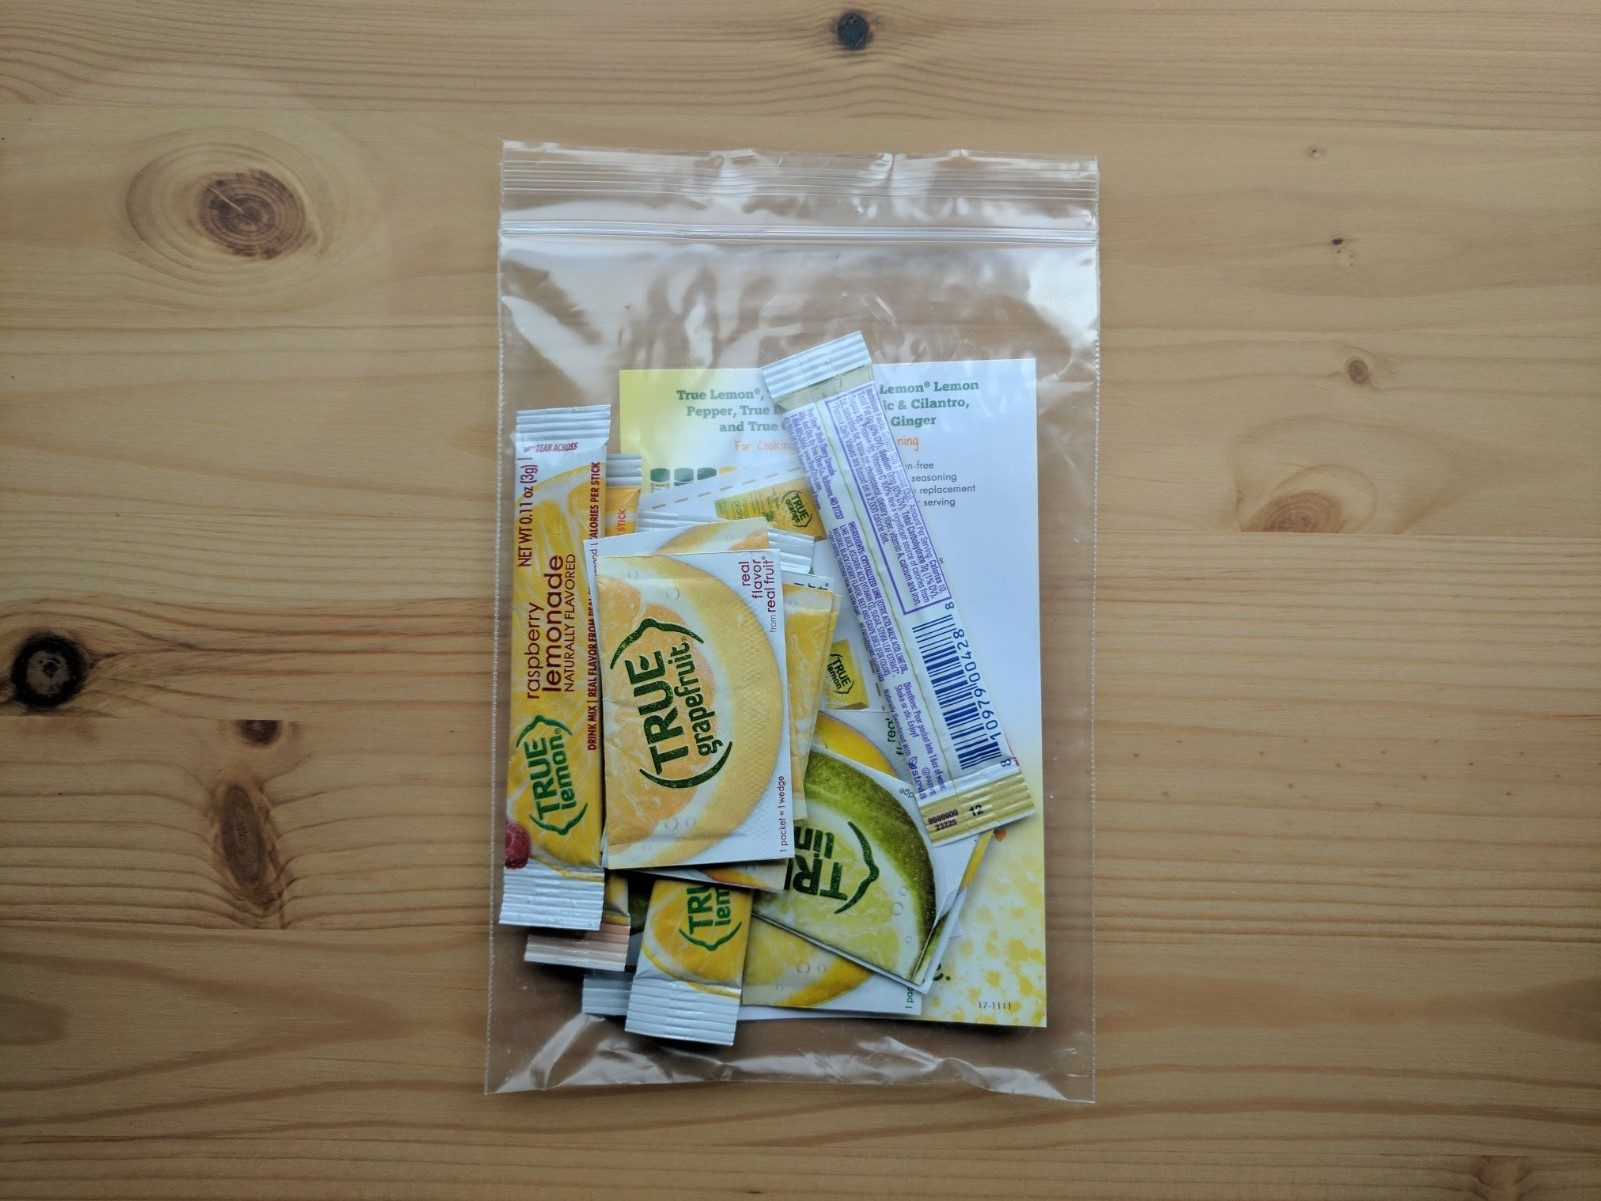 True Lemon Packets